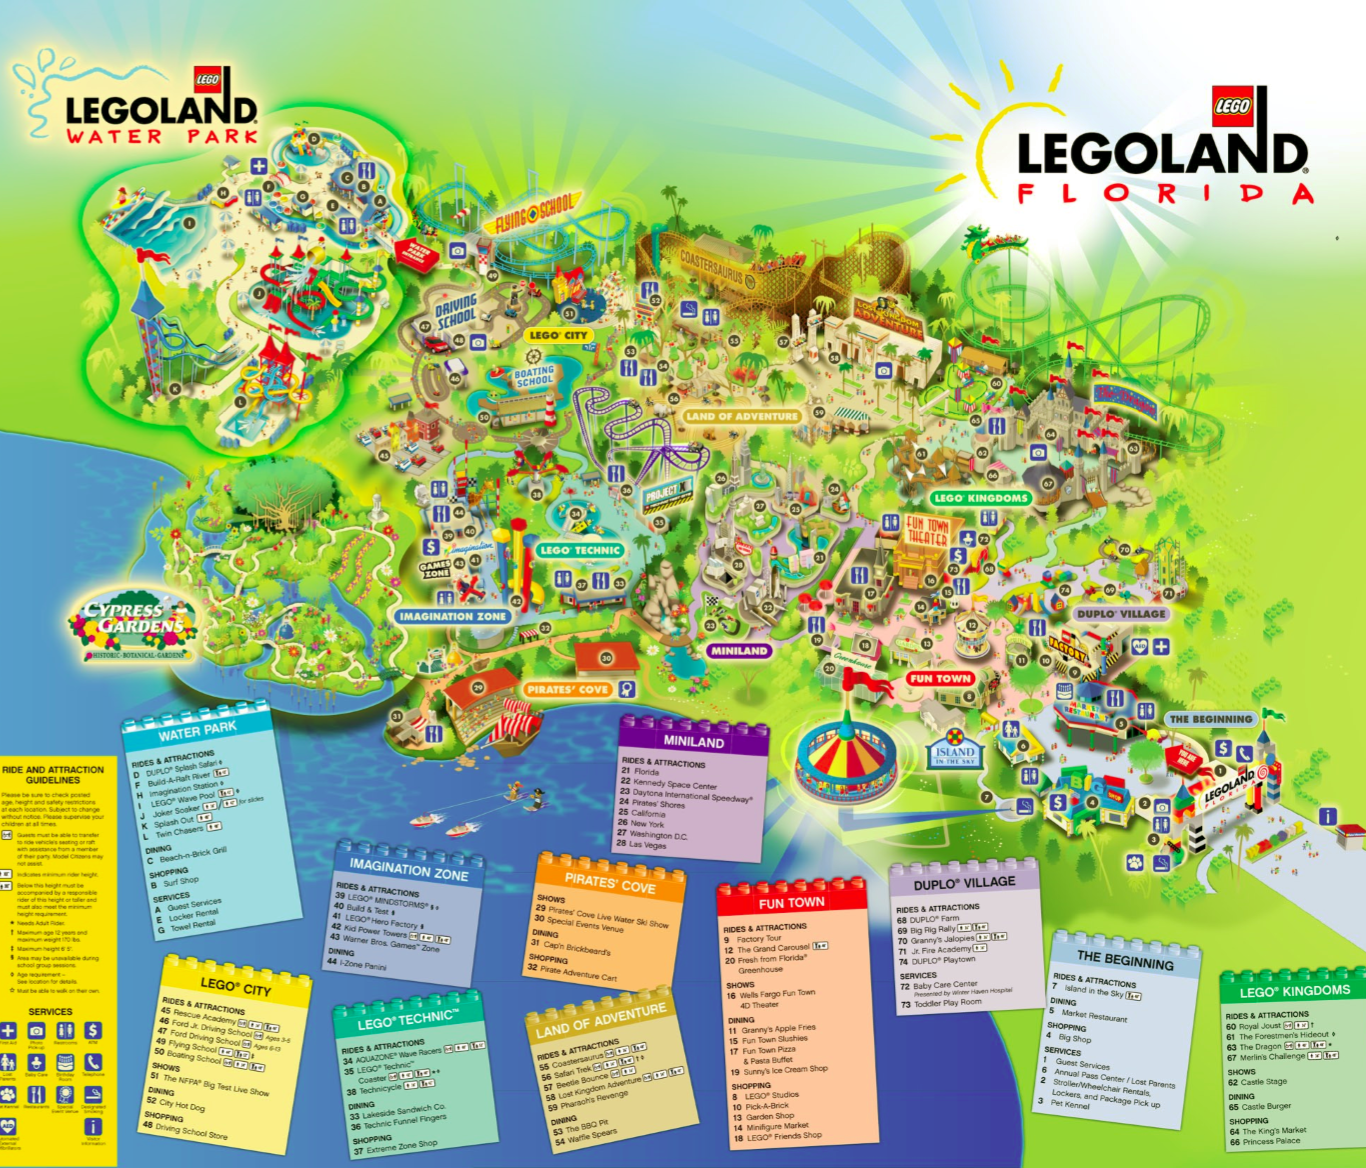 Legoland Map 2014 Images Amp Pictures  Becuo